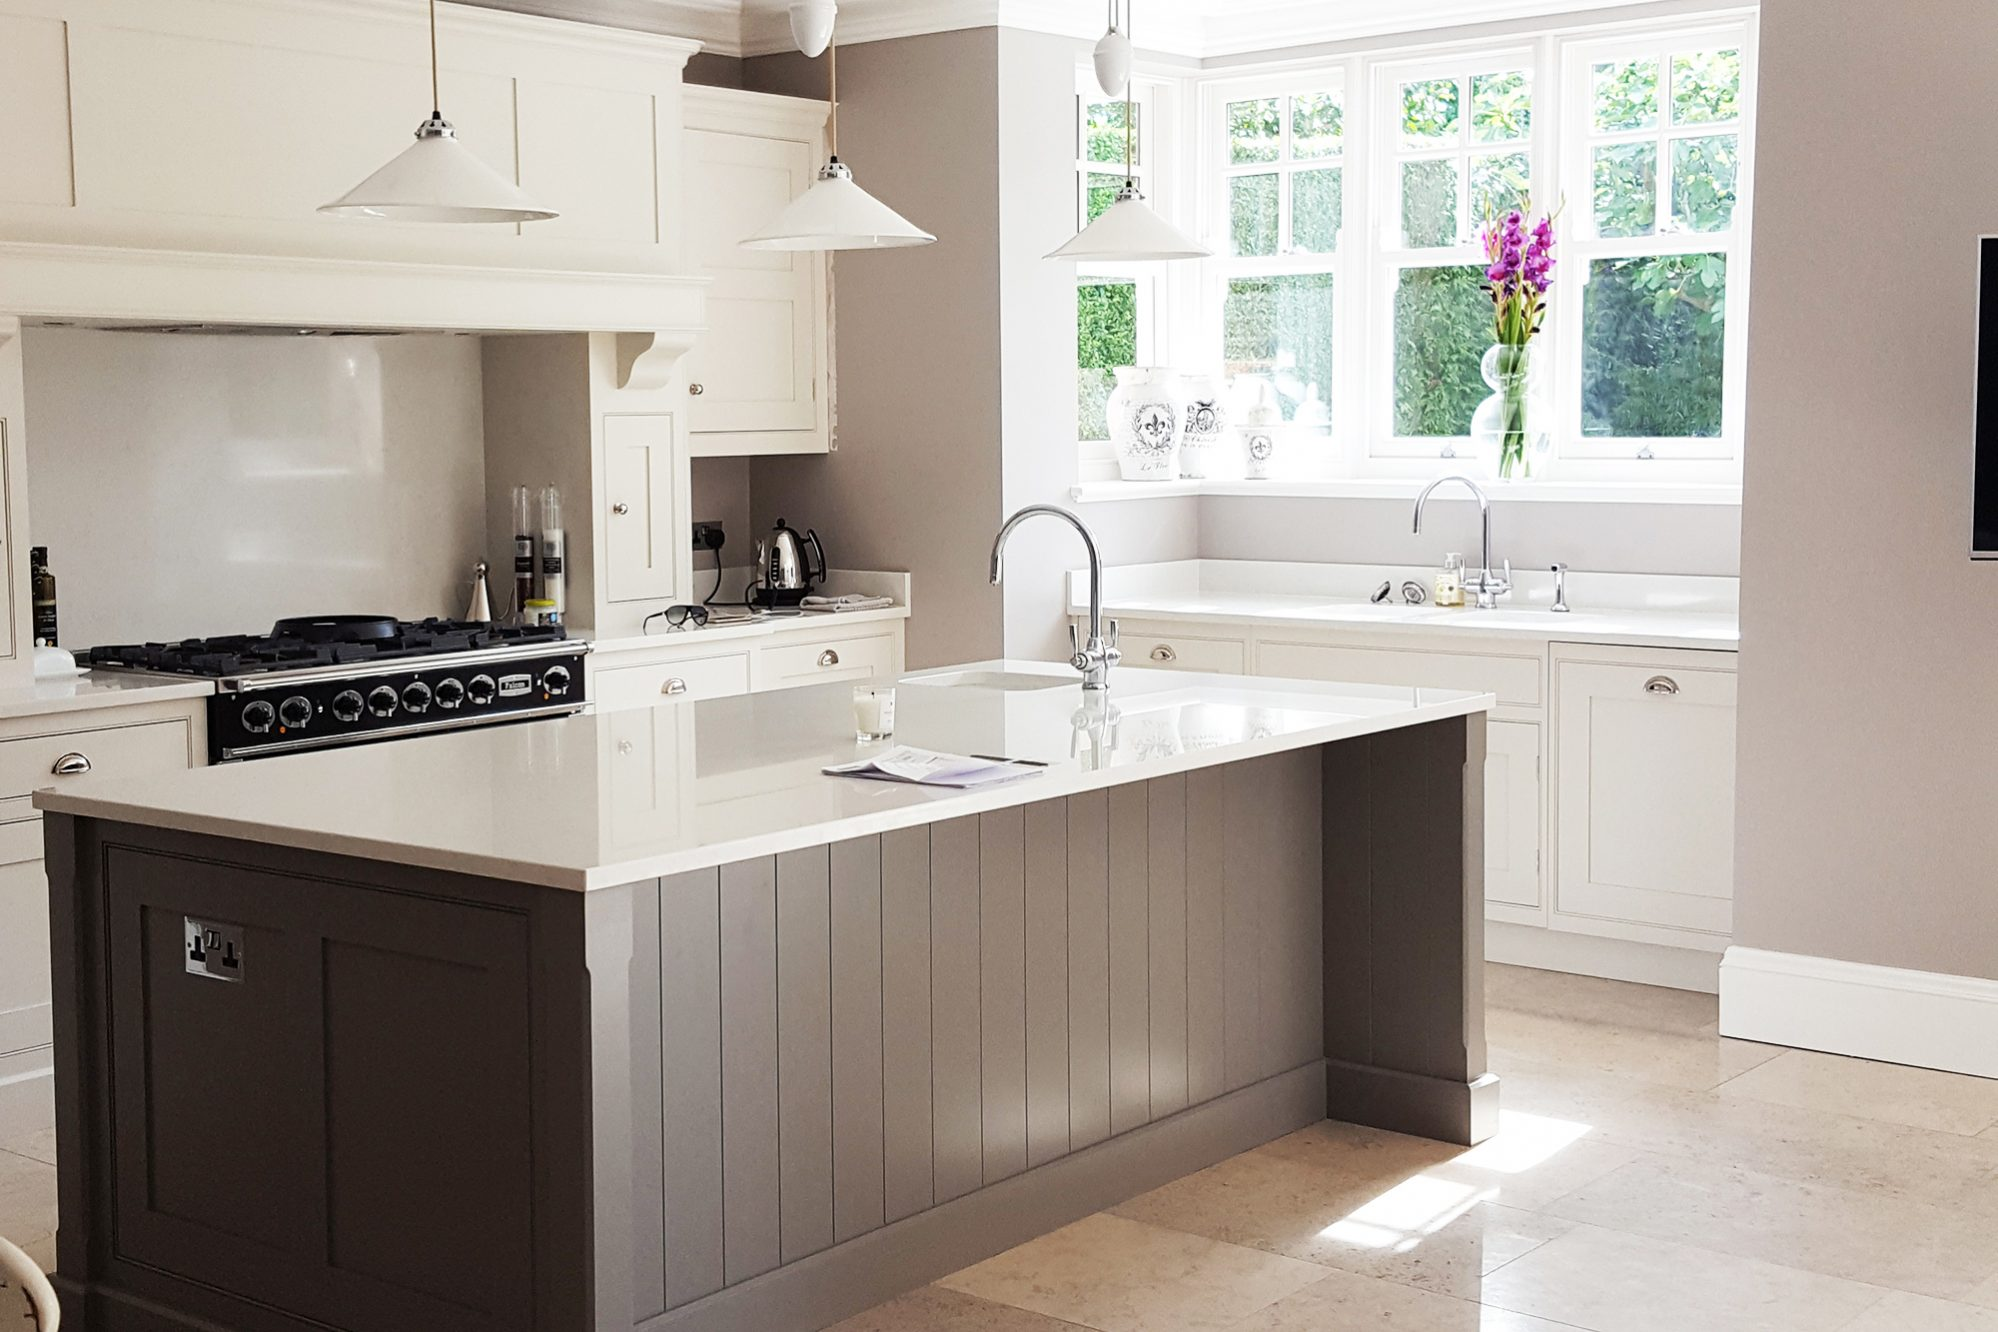 Bespoke Kitchen Design armstrong jordan bespoke kitchens – interiors for the finest homes